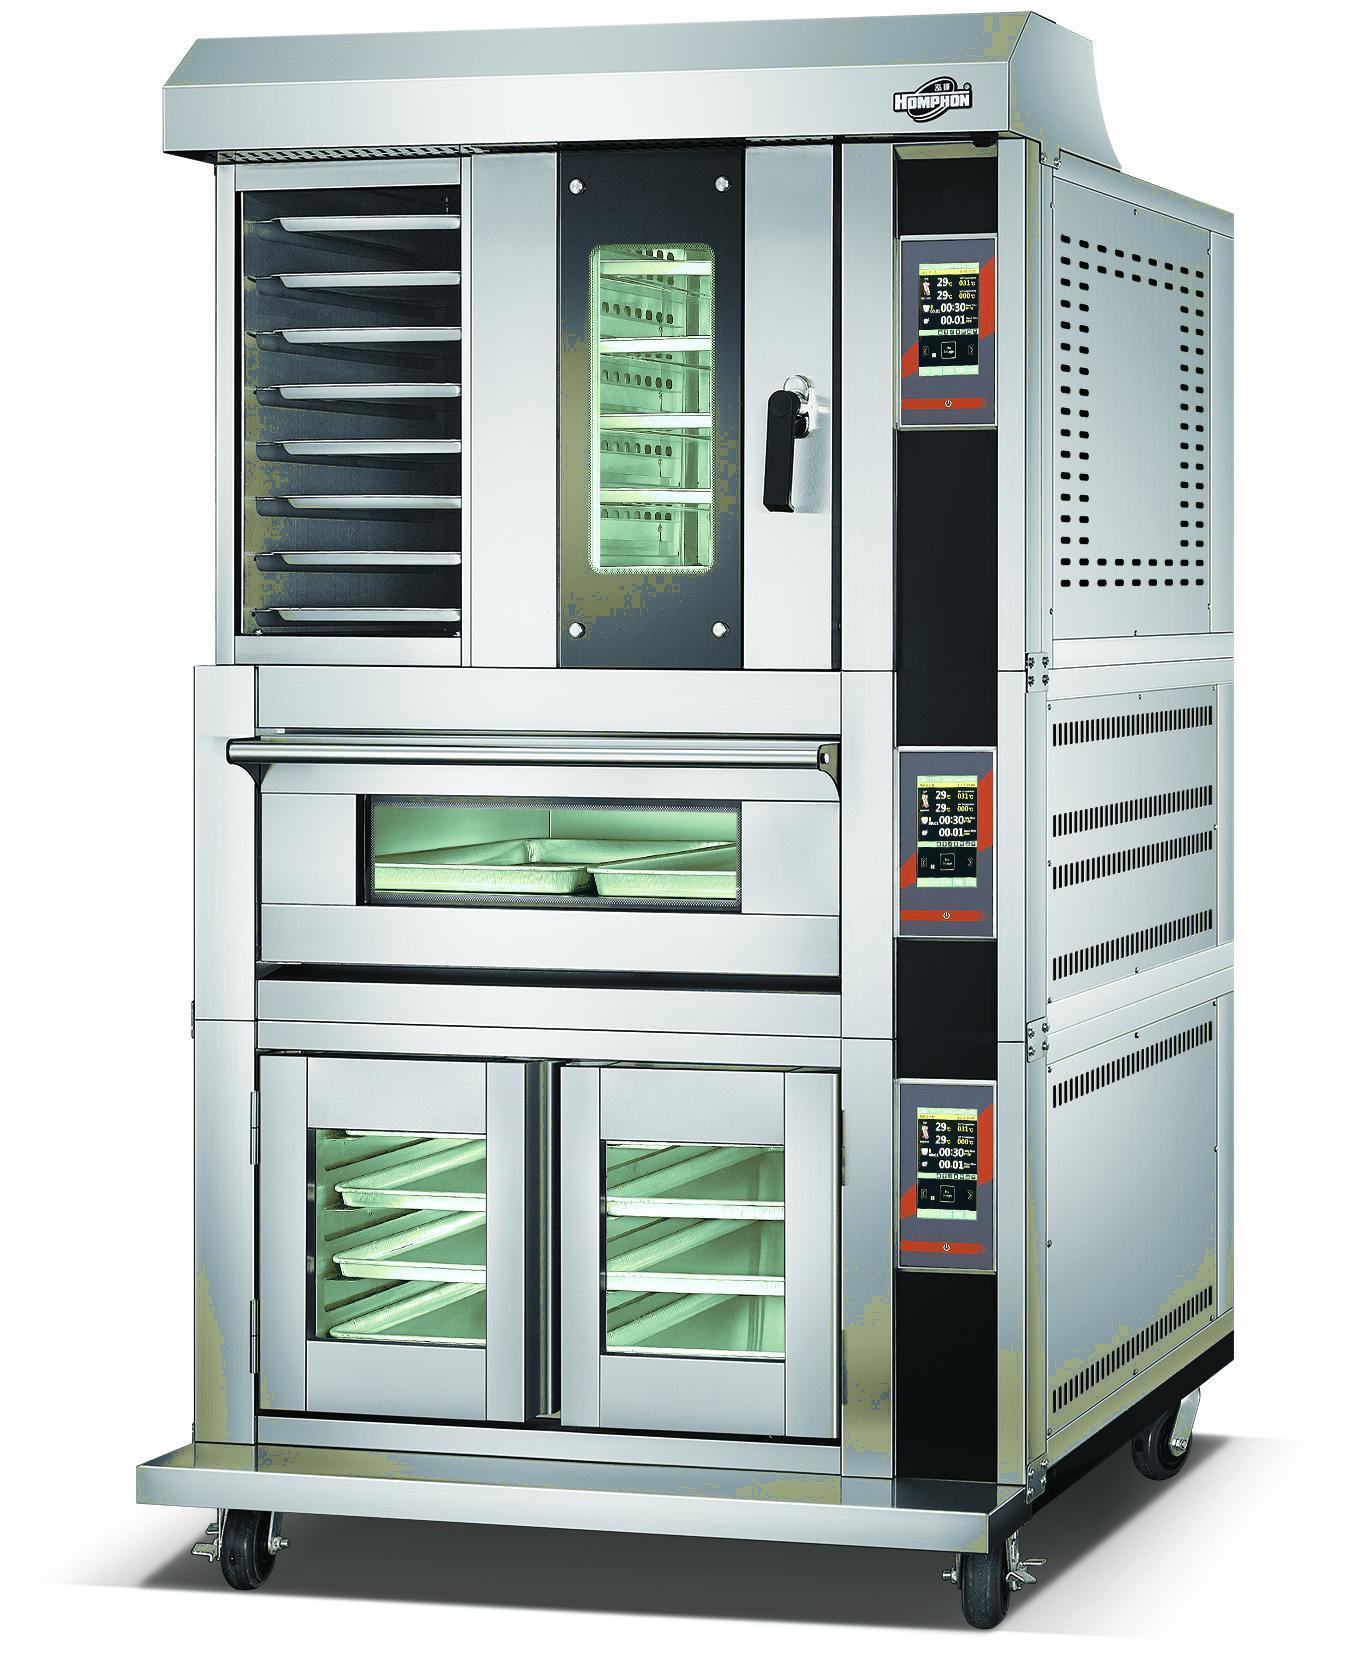 Steam Oven/Dough Proofer/Hot Air Convection Oven